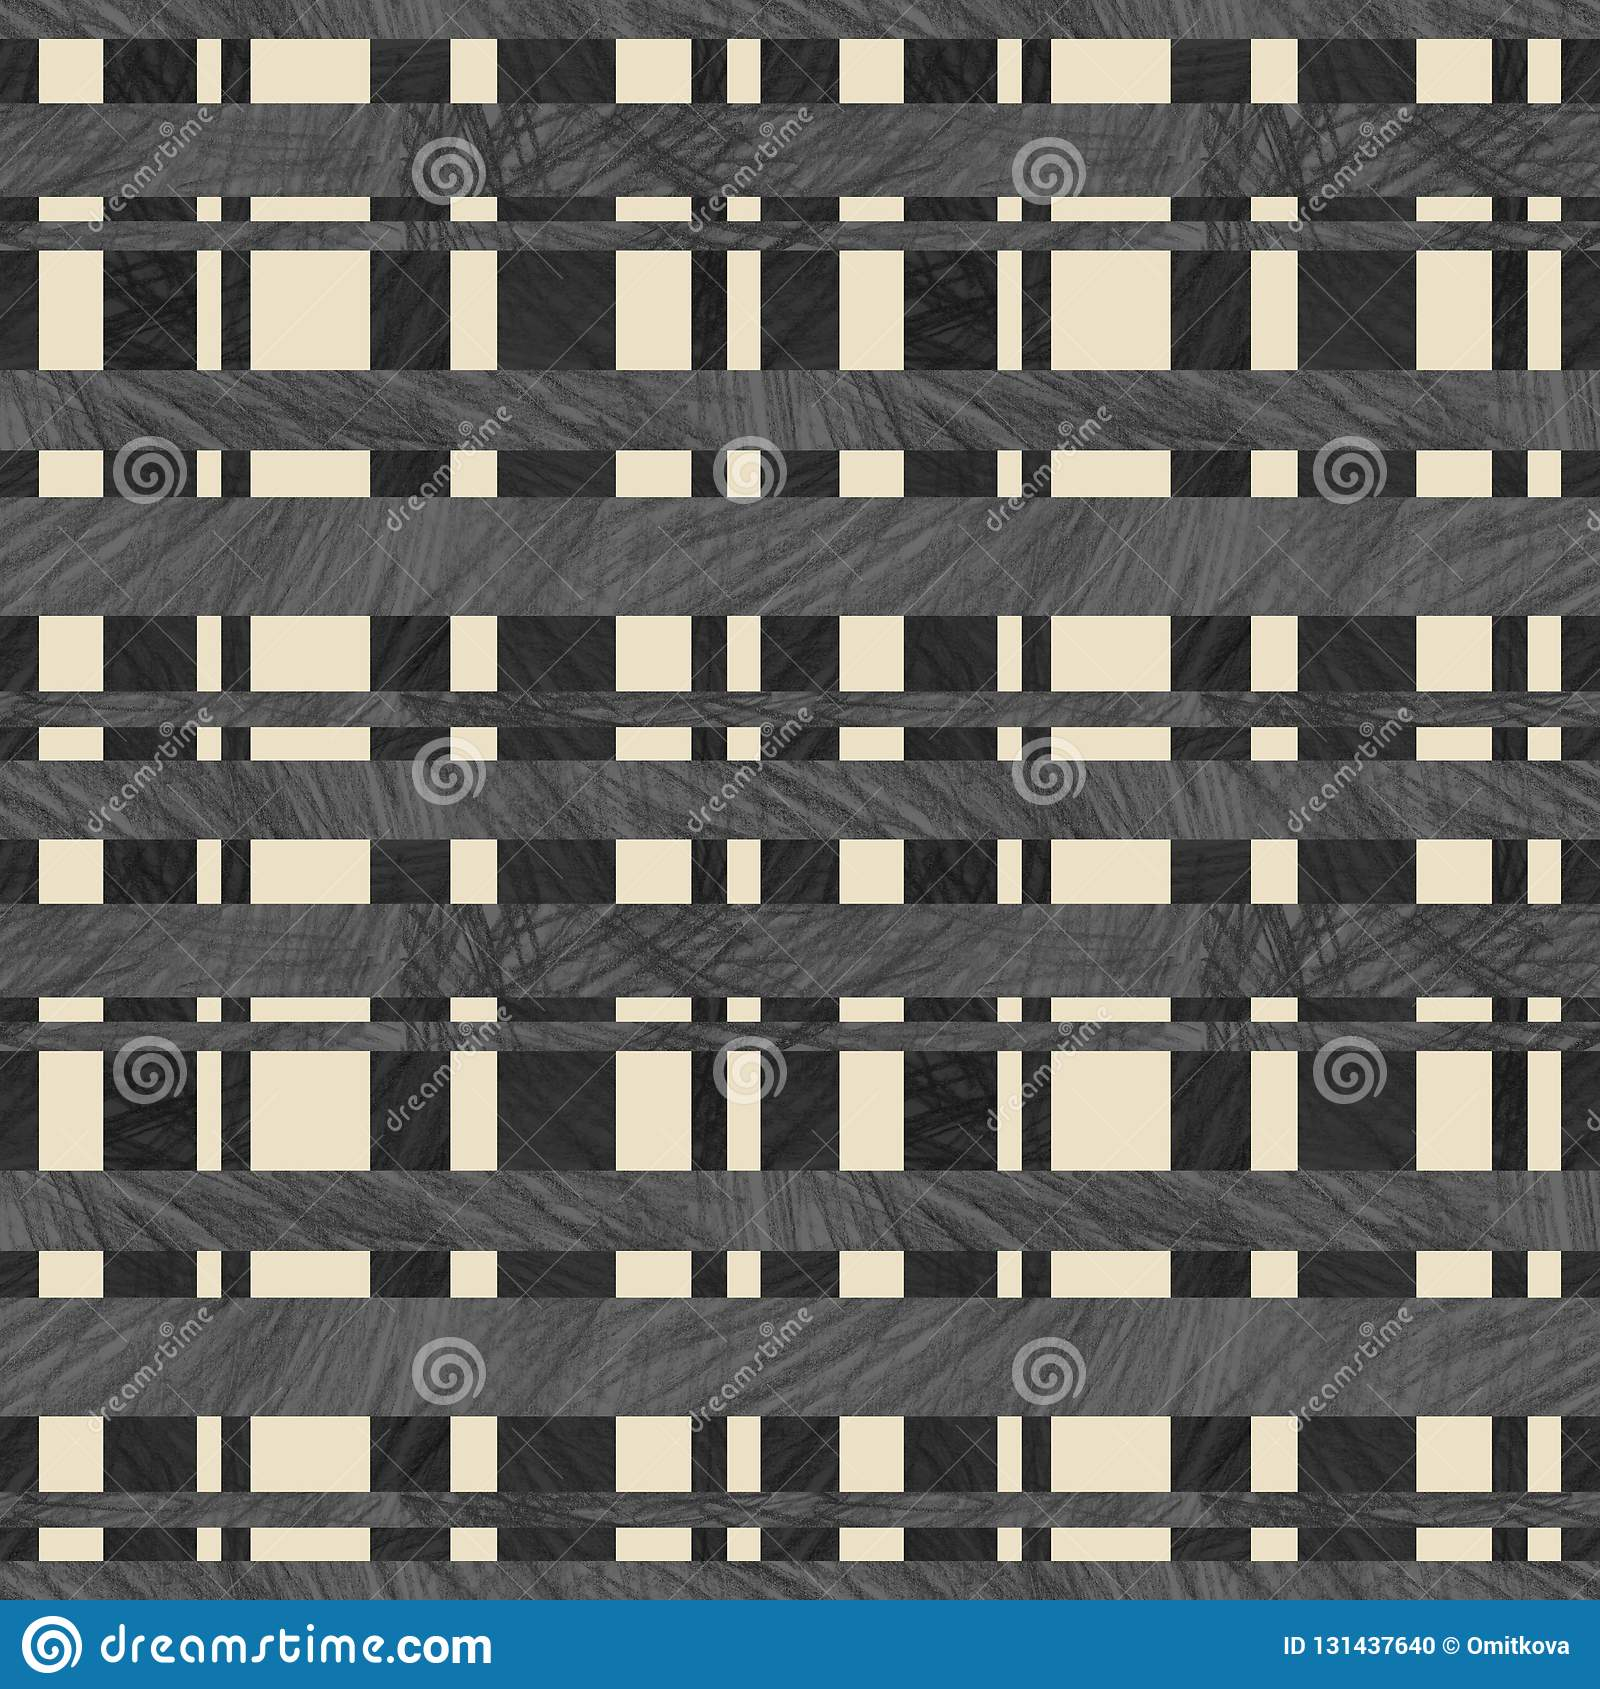 Seamless checkered decor textured with color pencil handdrawing suitable for wallpaper background backdrop packaging